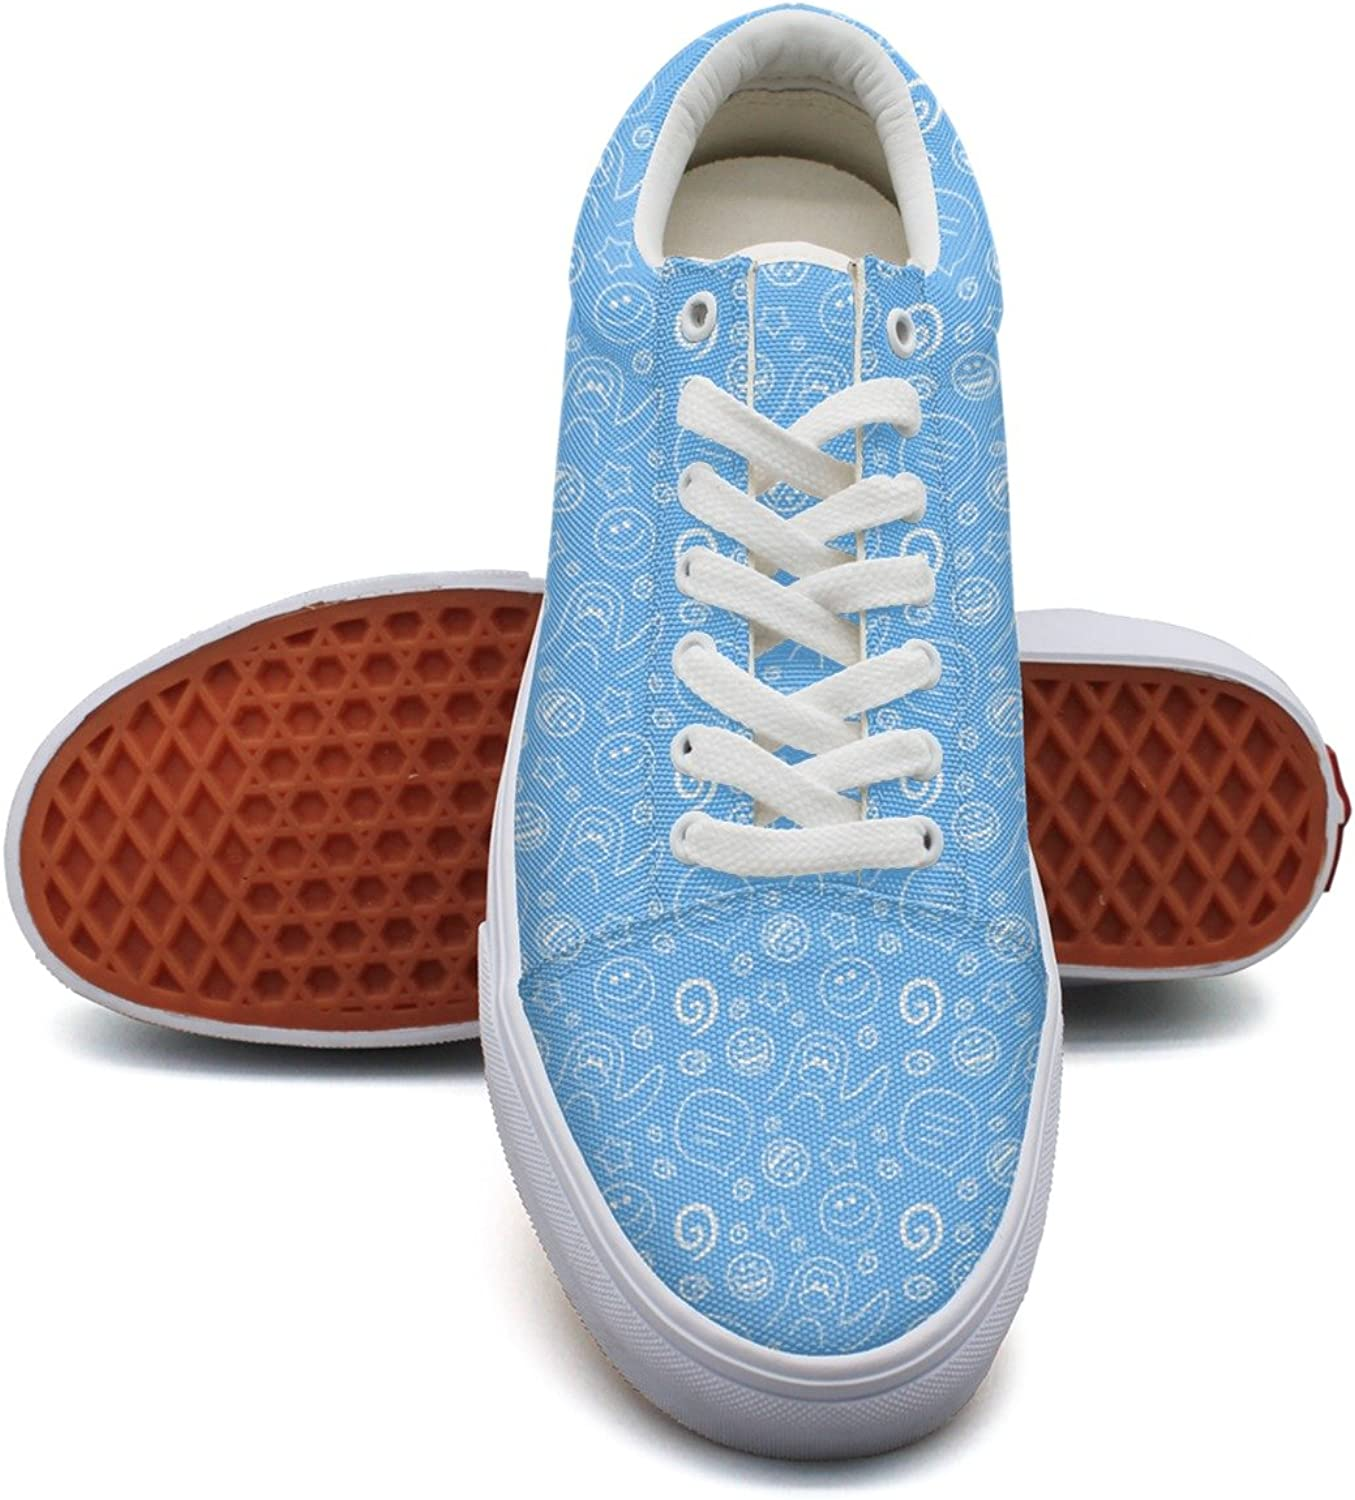 Freewander Customized Sports Sneakers Shoes for Girls